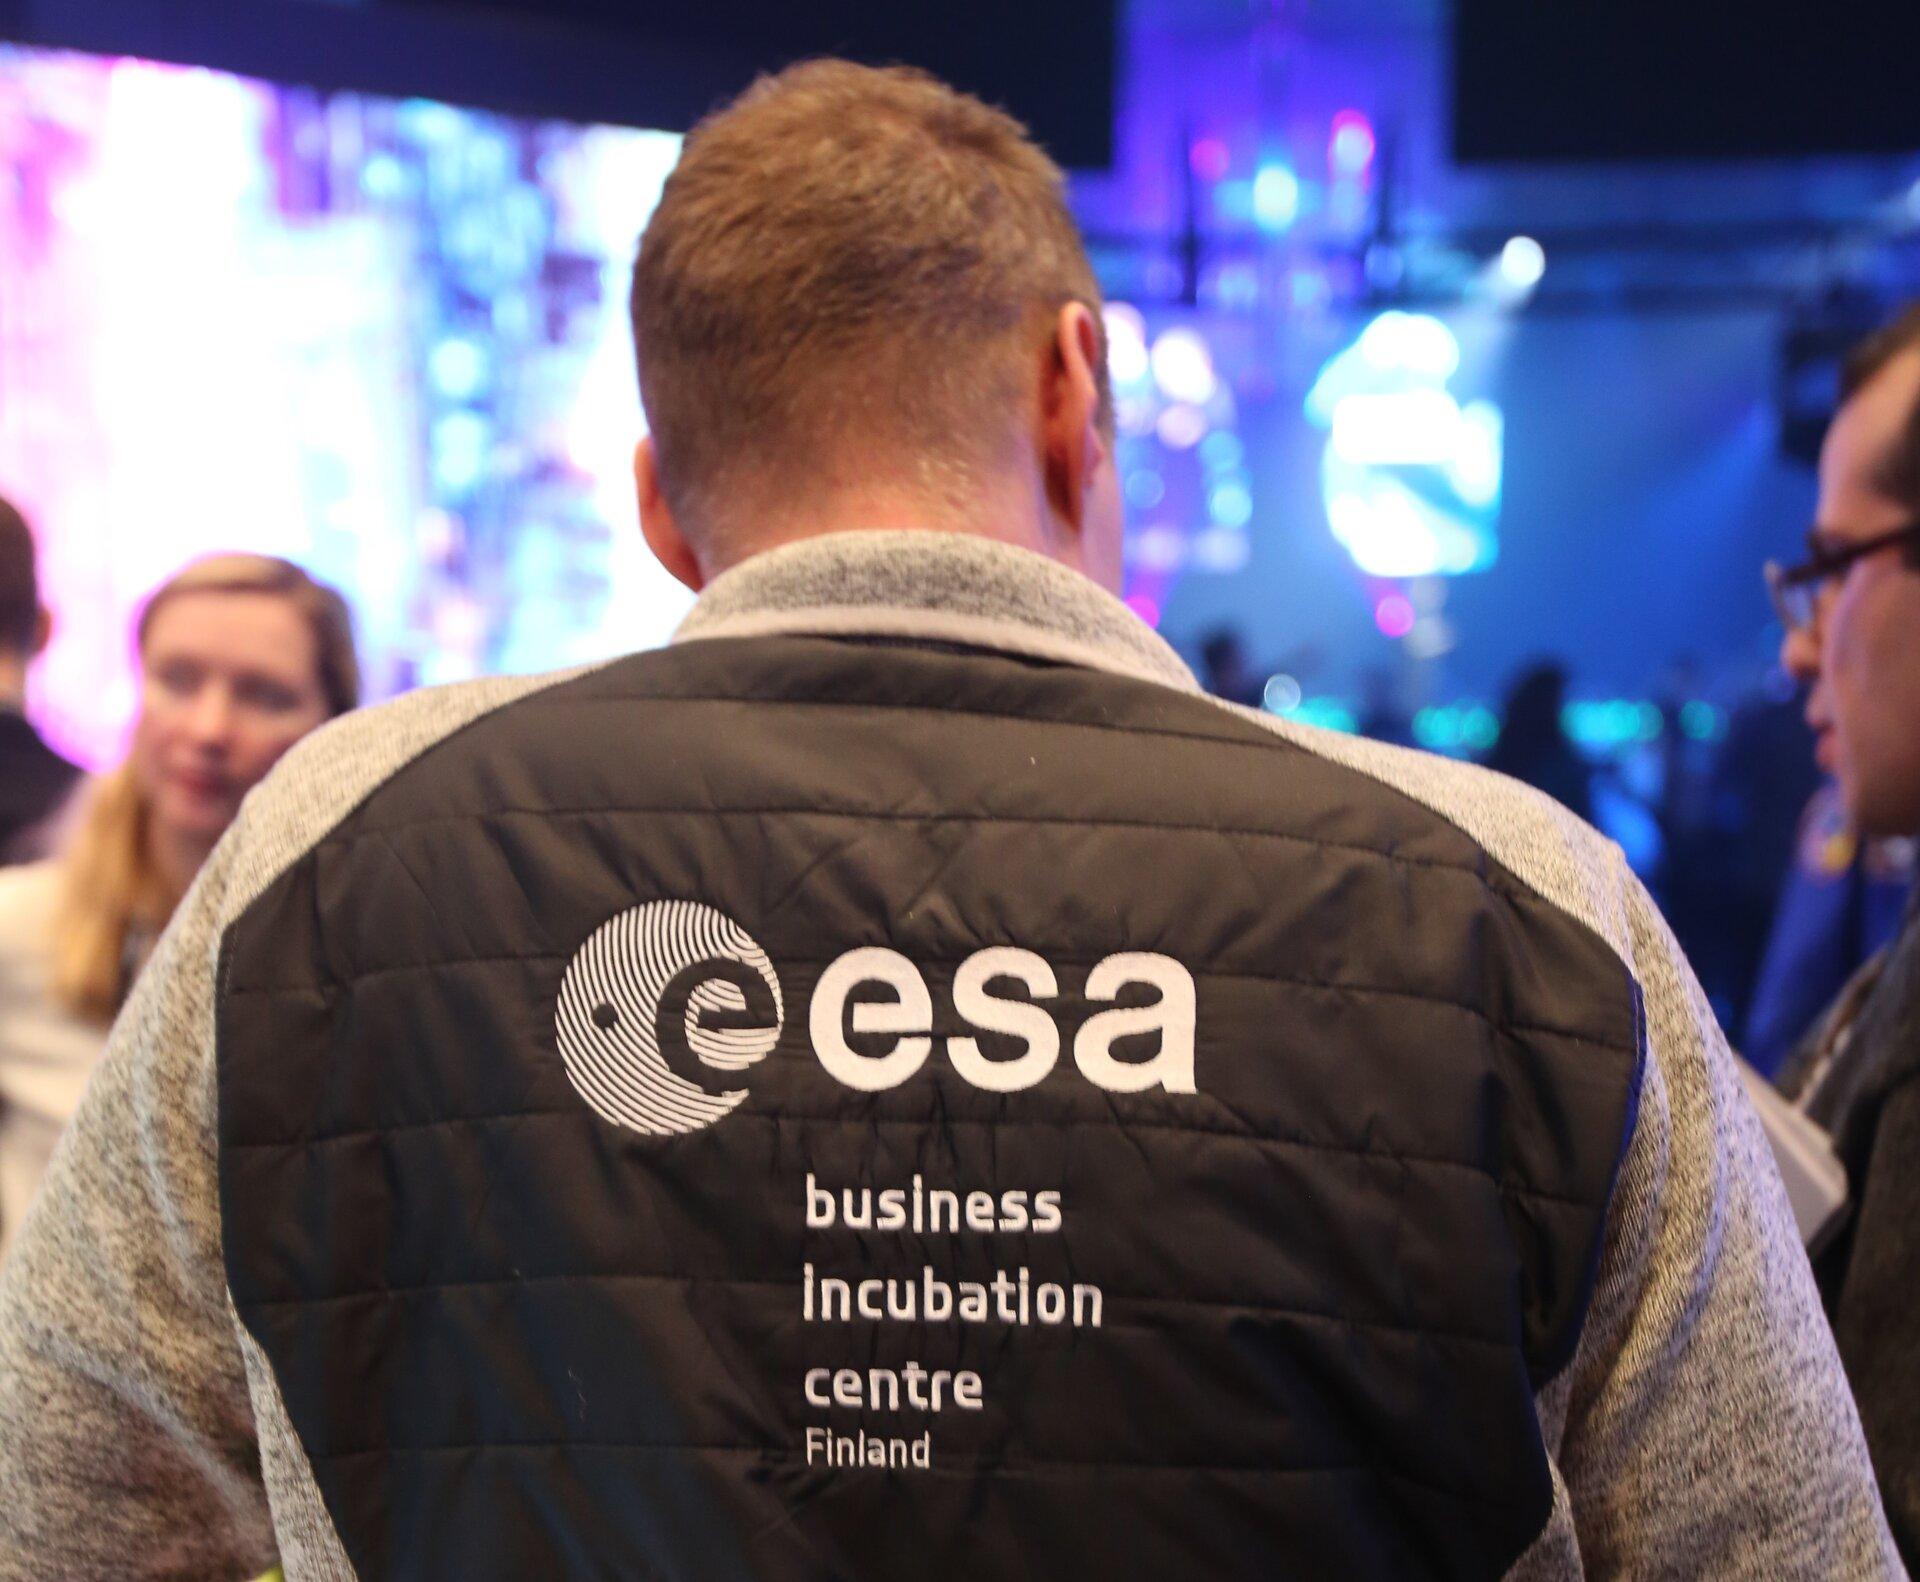 About a dozen companies based at ESA business incubation centres exhibited at the event